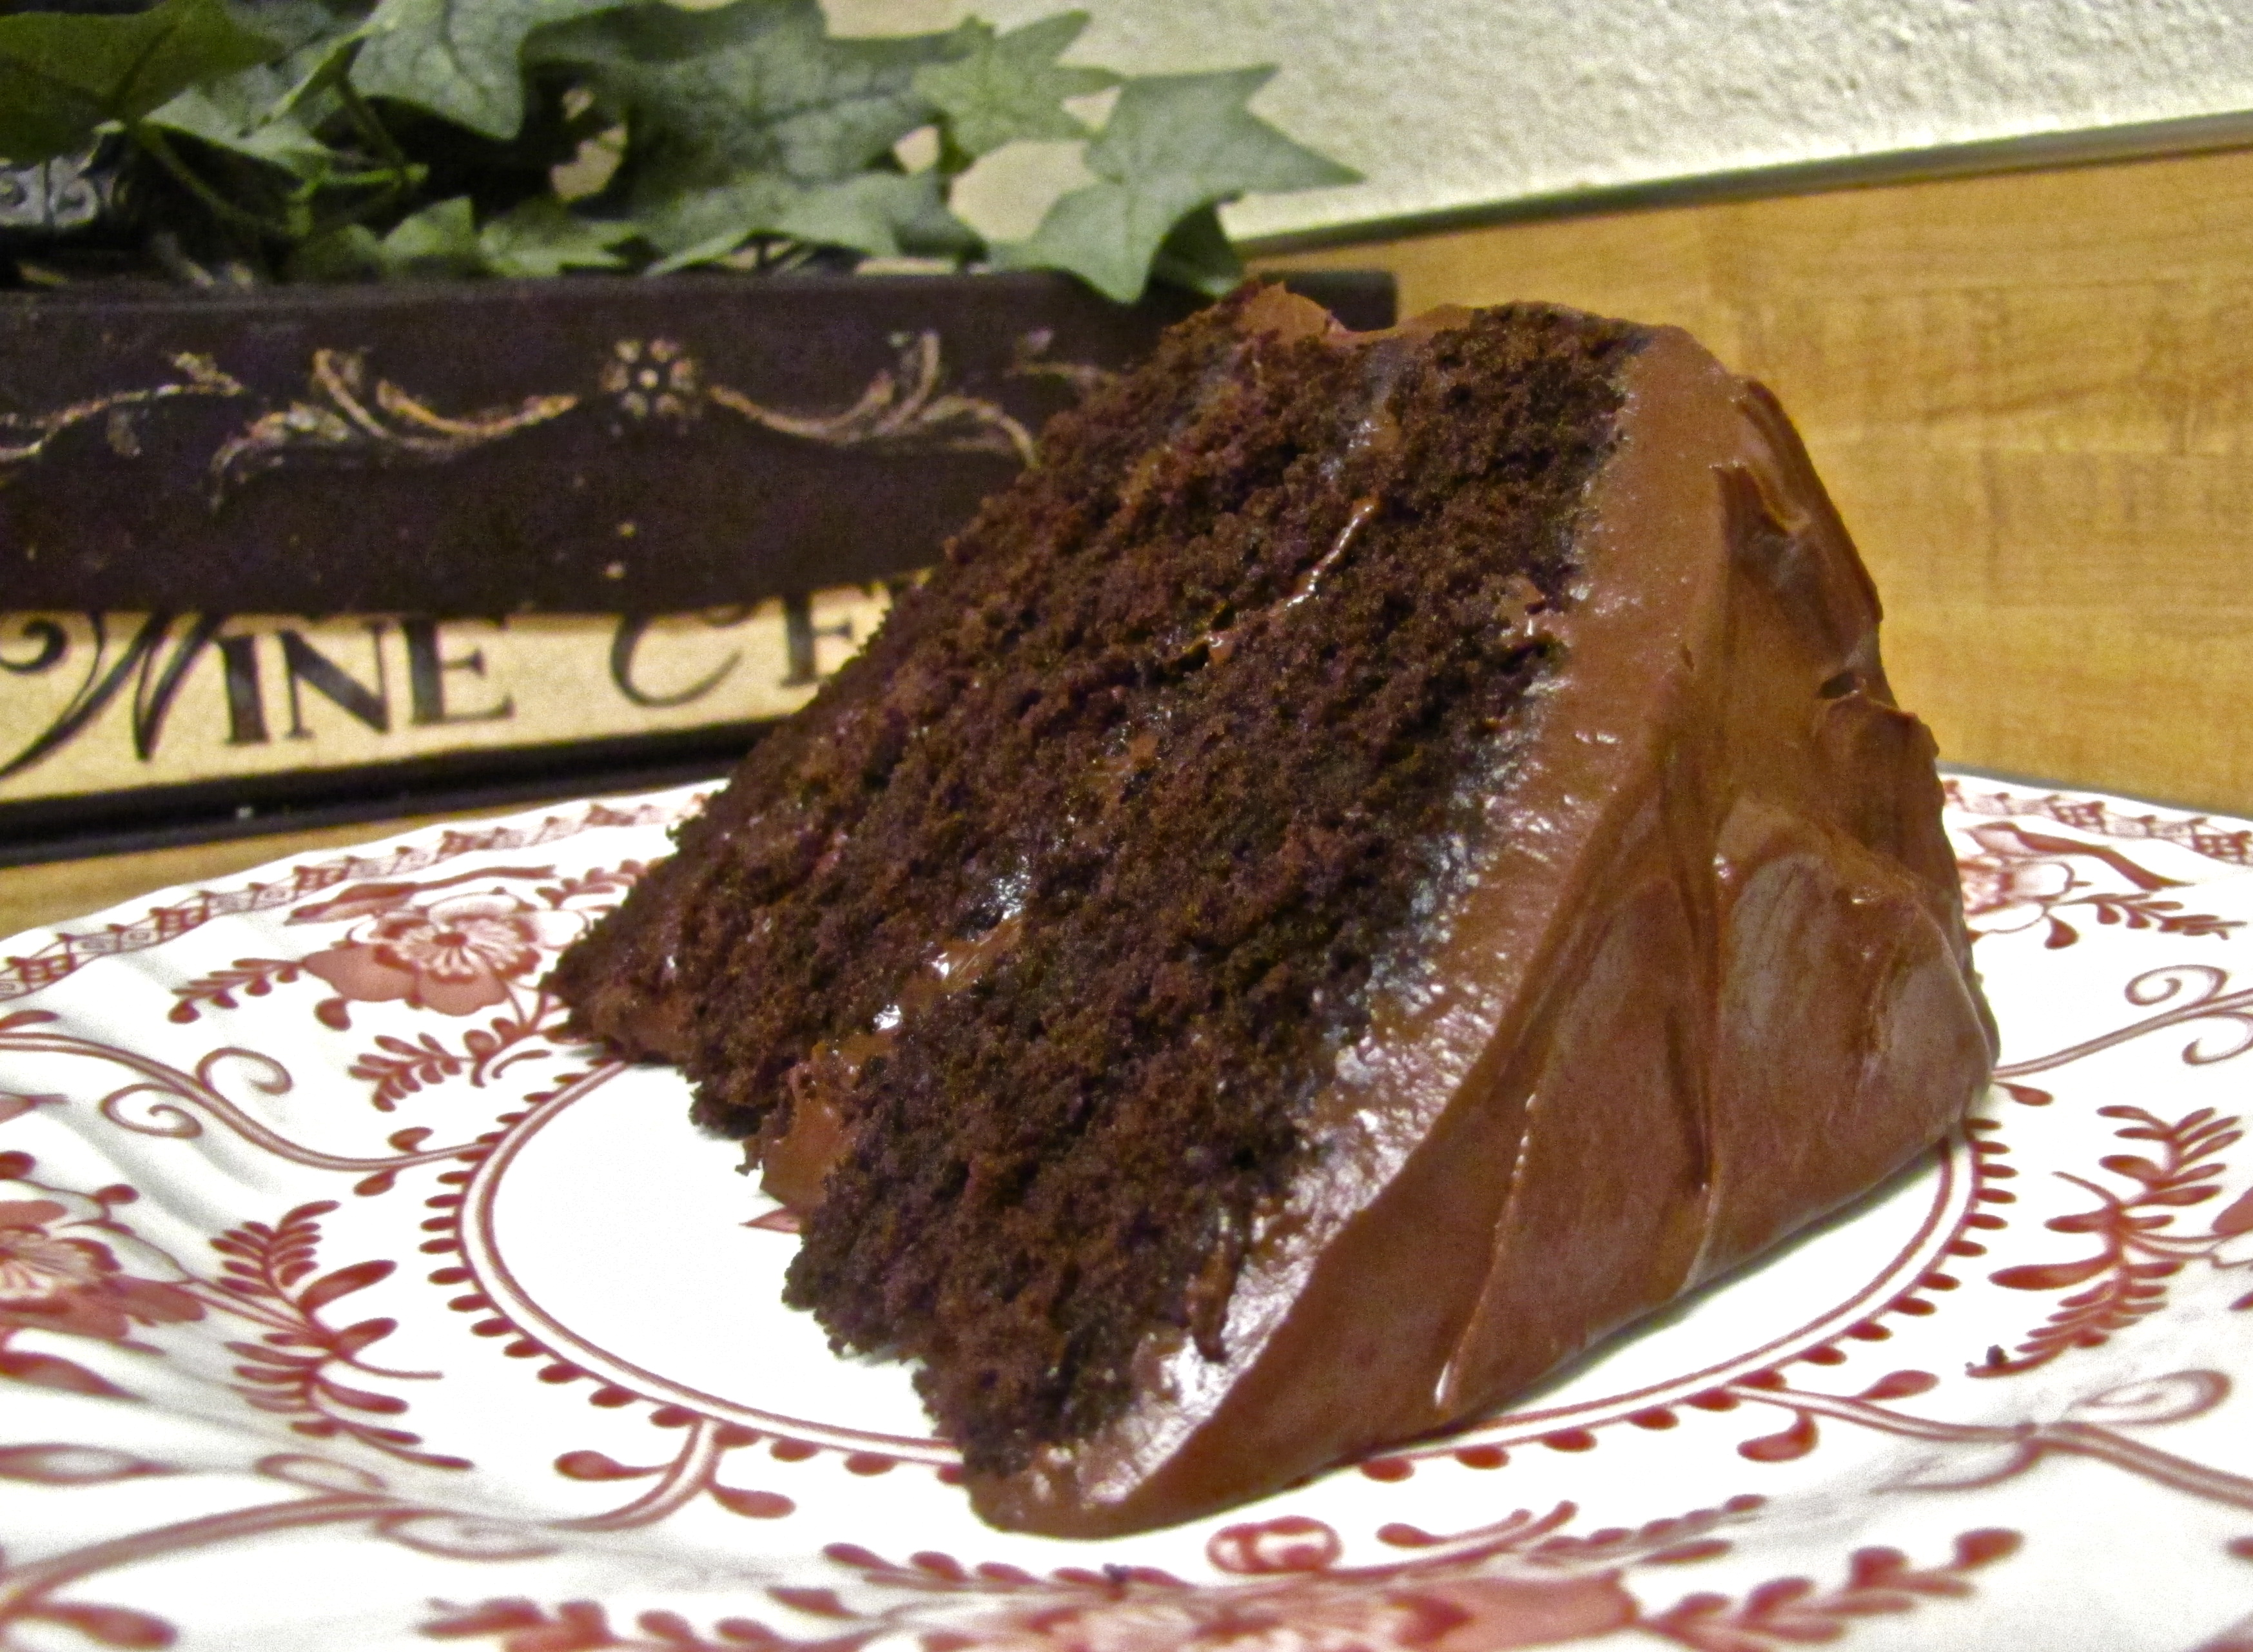 Albertsons chocolate cake